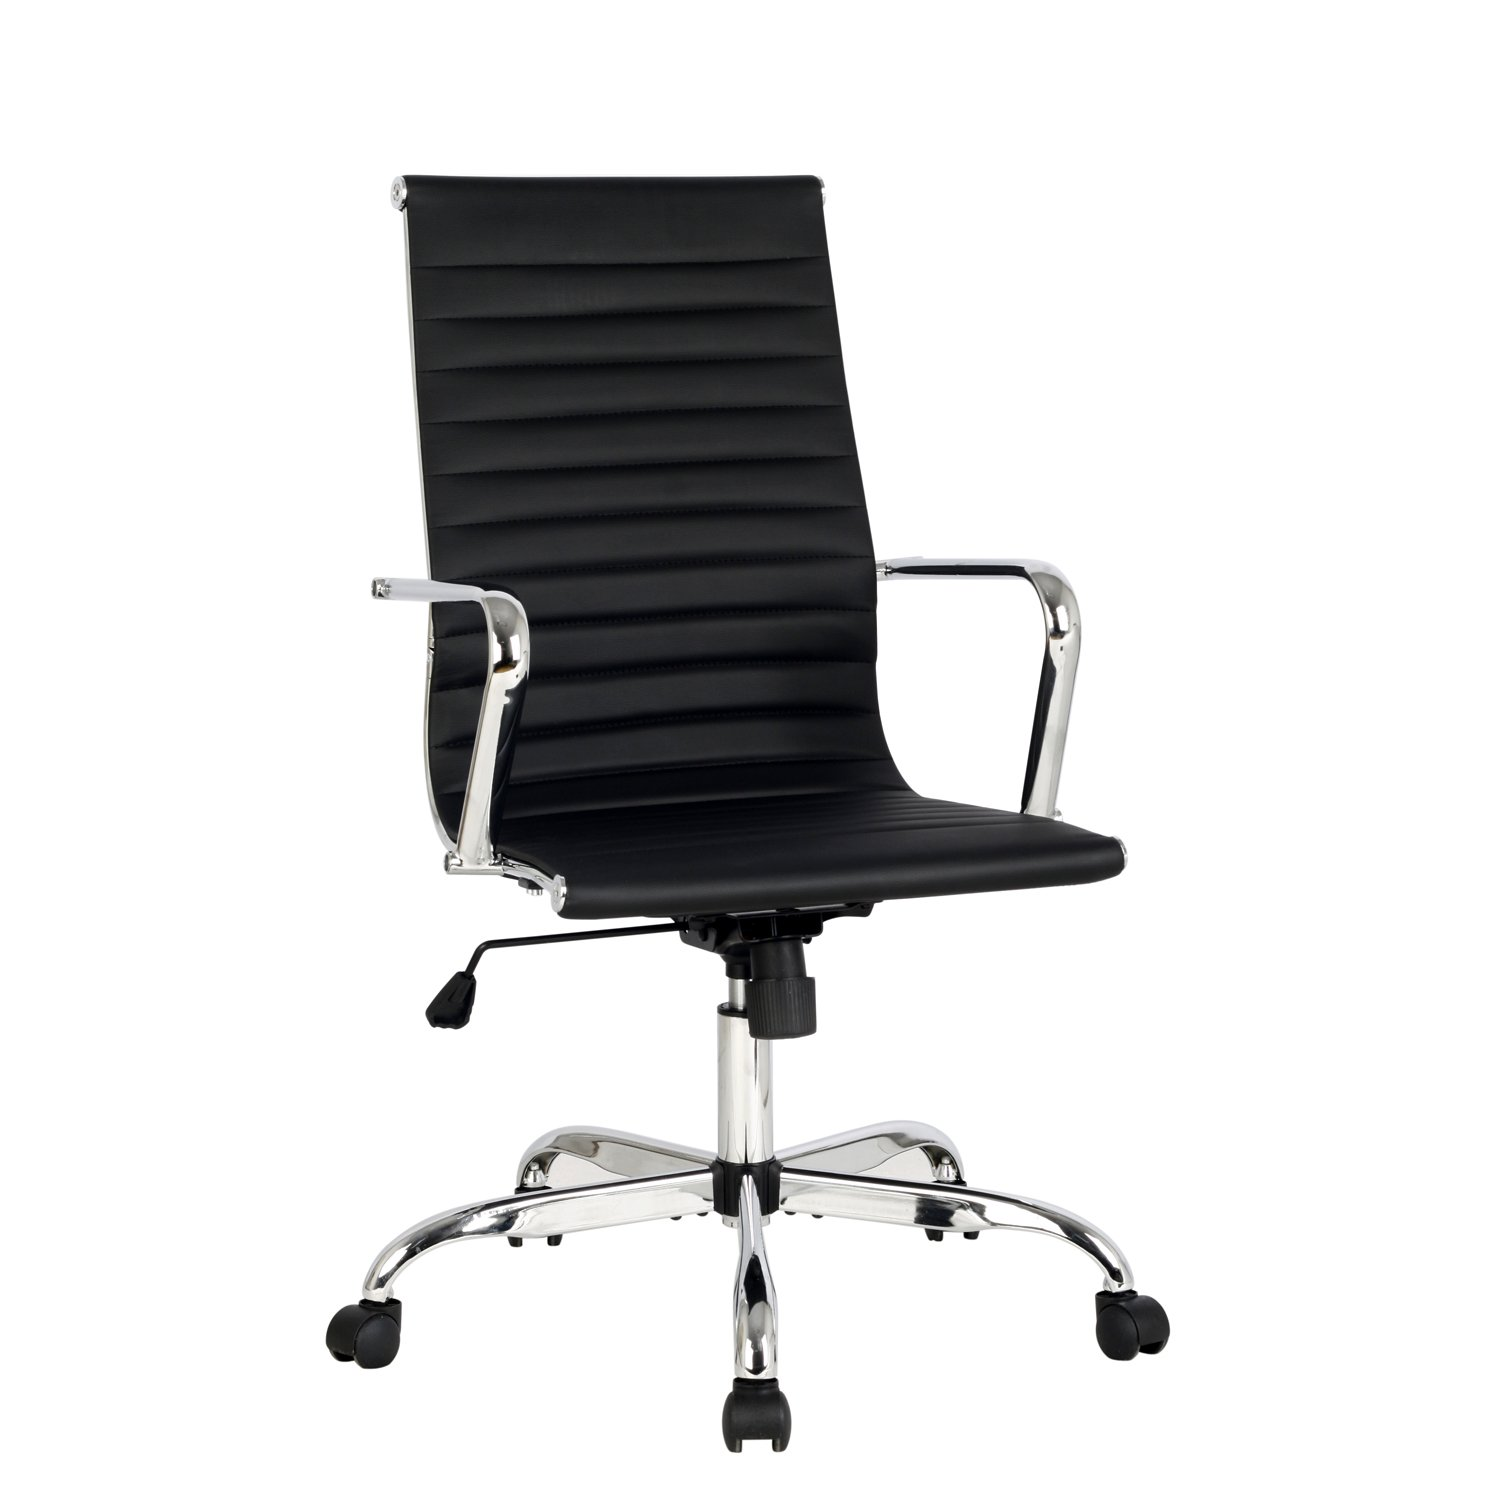 PULUOMIS High Back Black Ribbed Upholstered Leather Executive Swivel Conference Chair, Tilt Adjustable Office Chair, Arm Rest Computer Chair